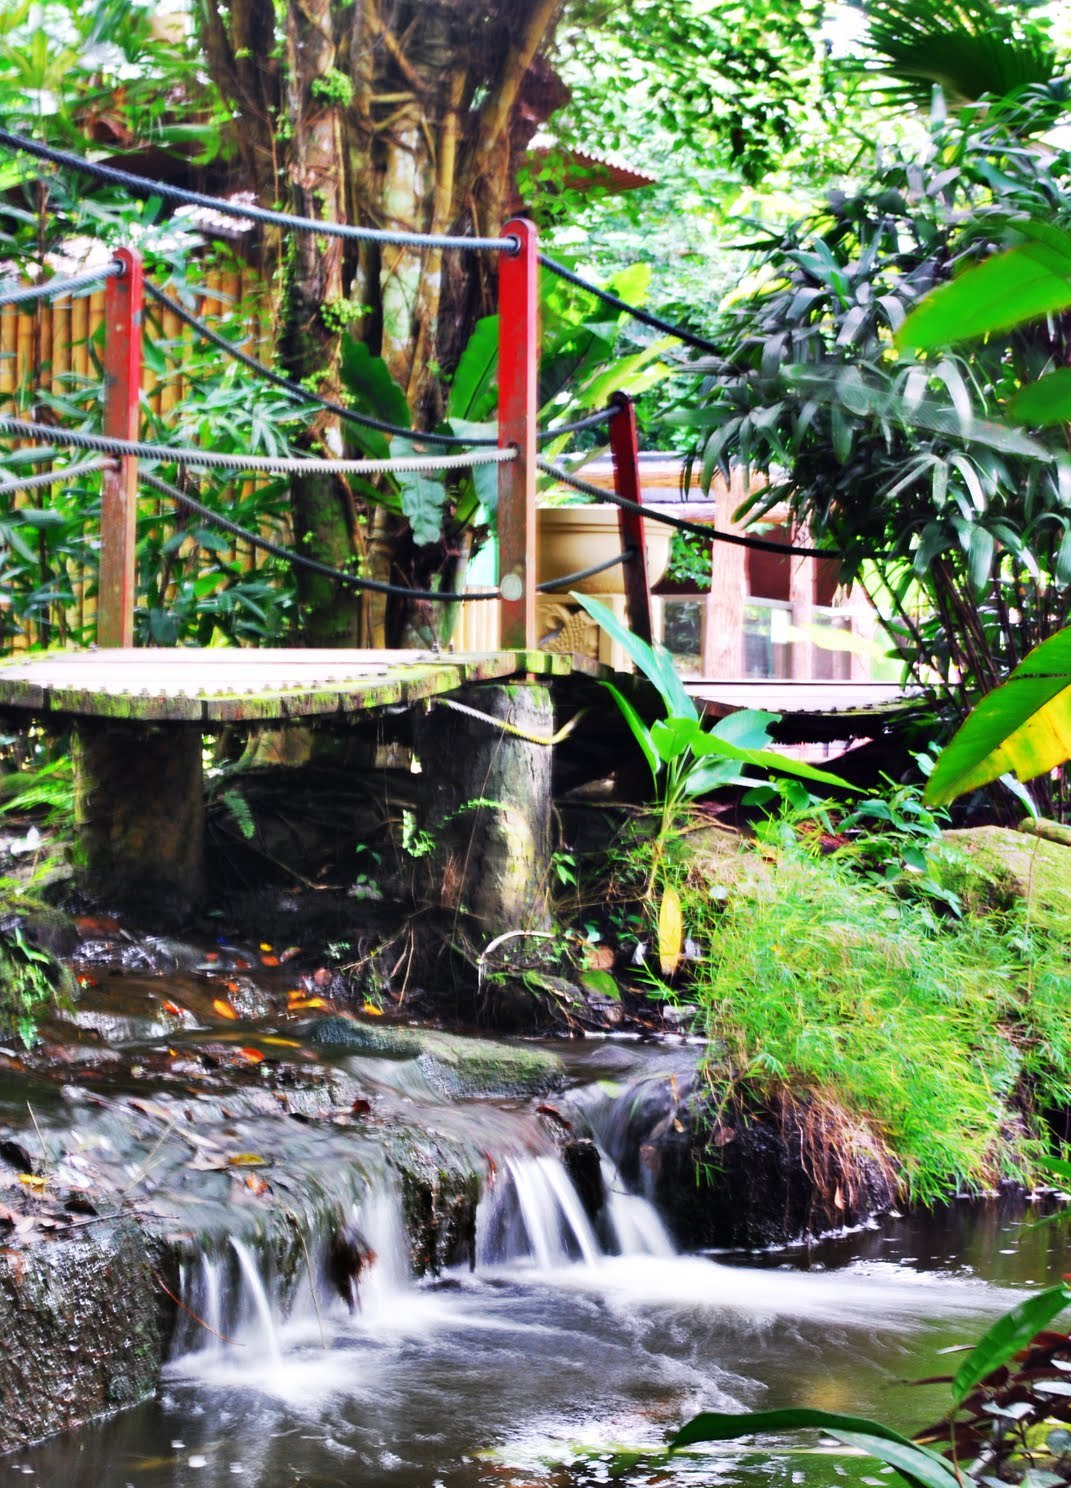 Koi River Valley Butterfly & Reptile Sanctuary Malacca - Melaka Tourist Attractions